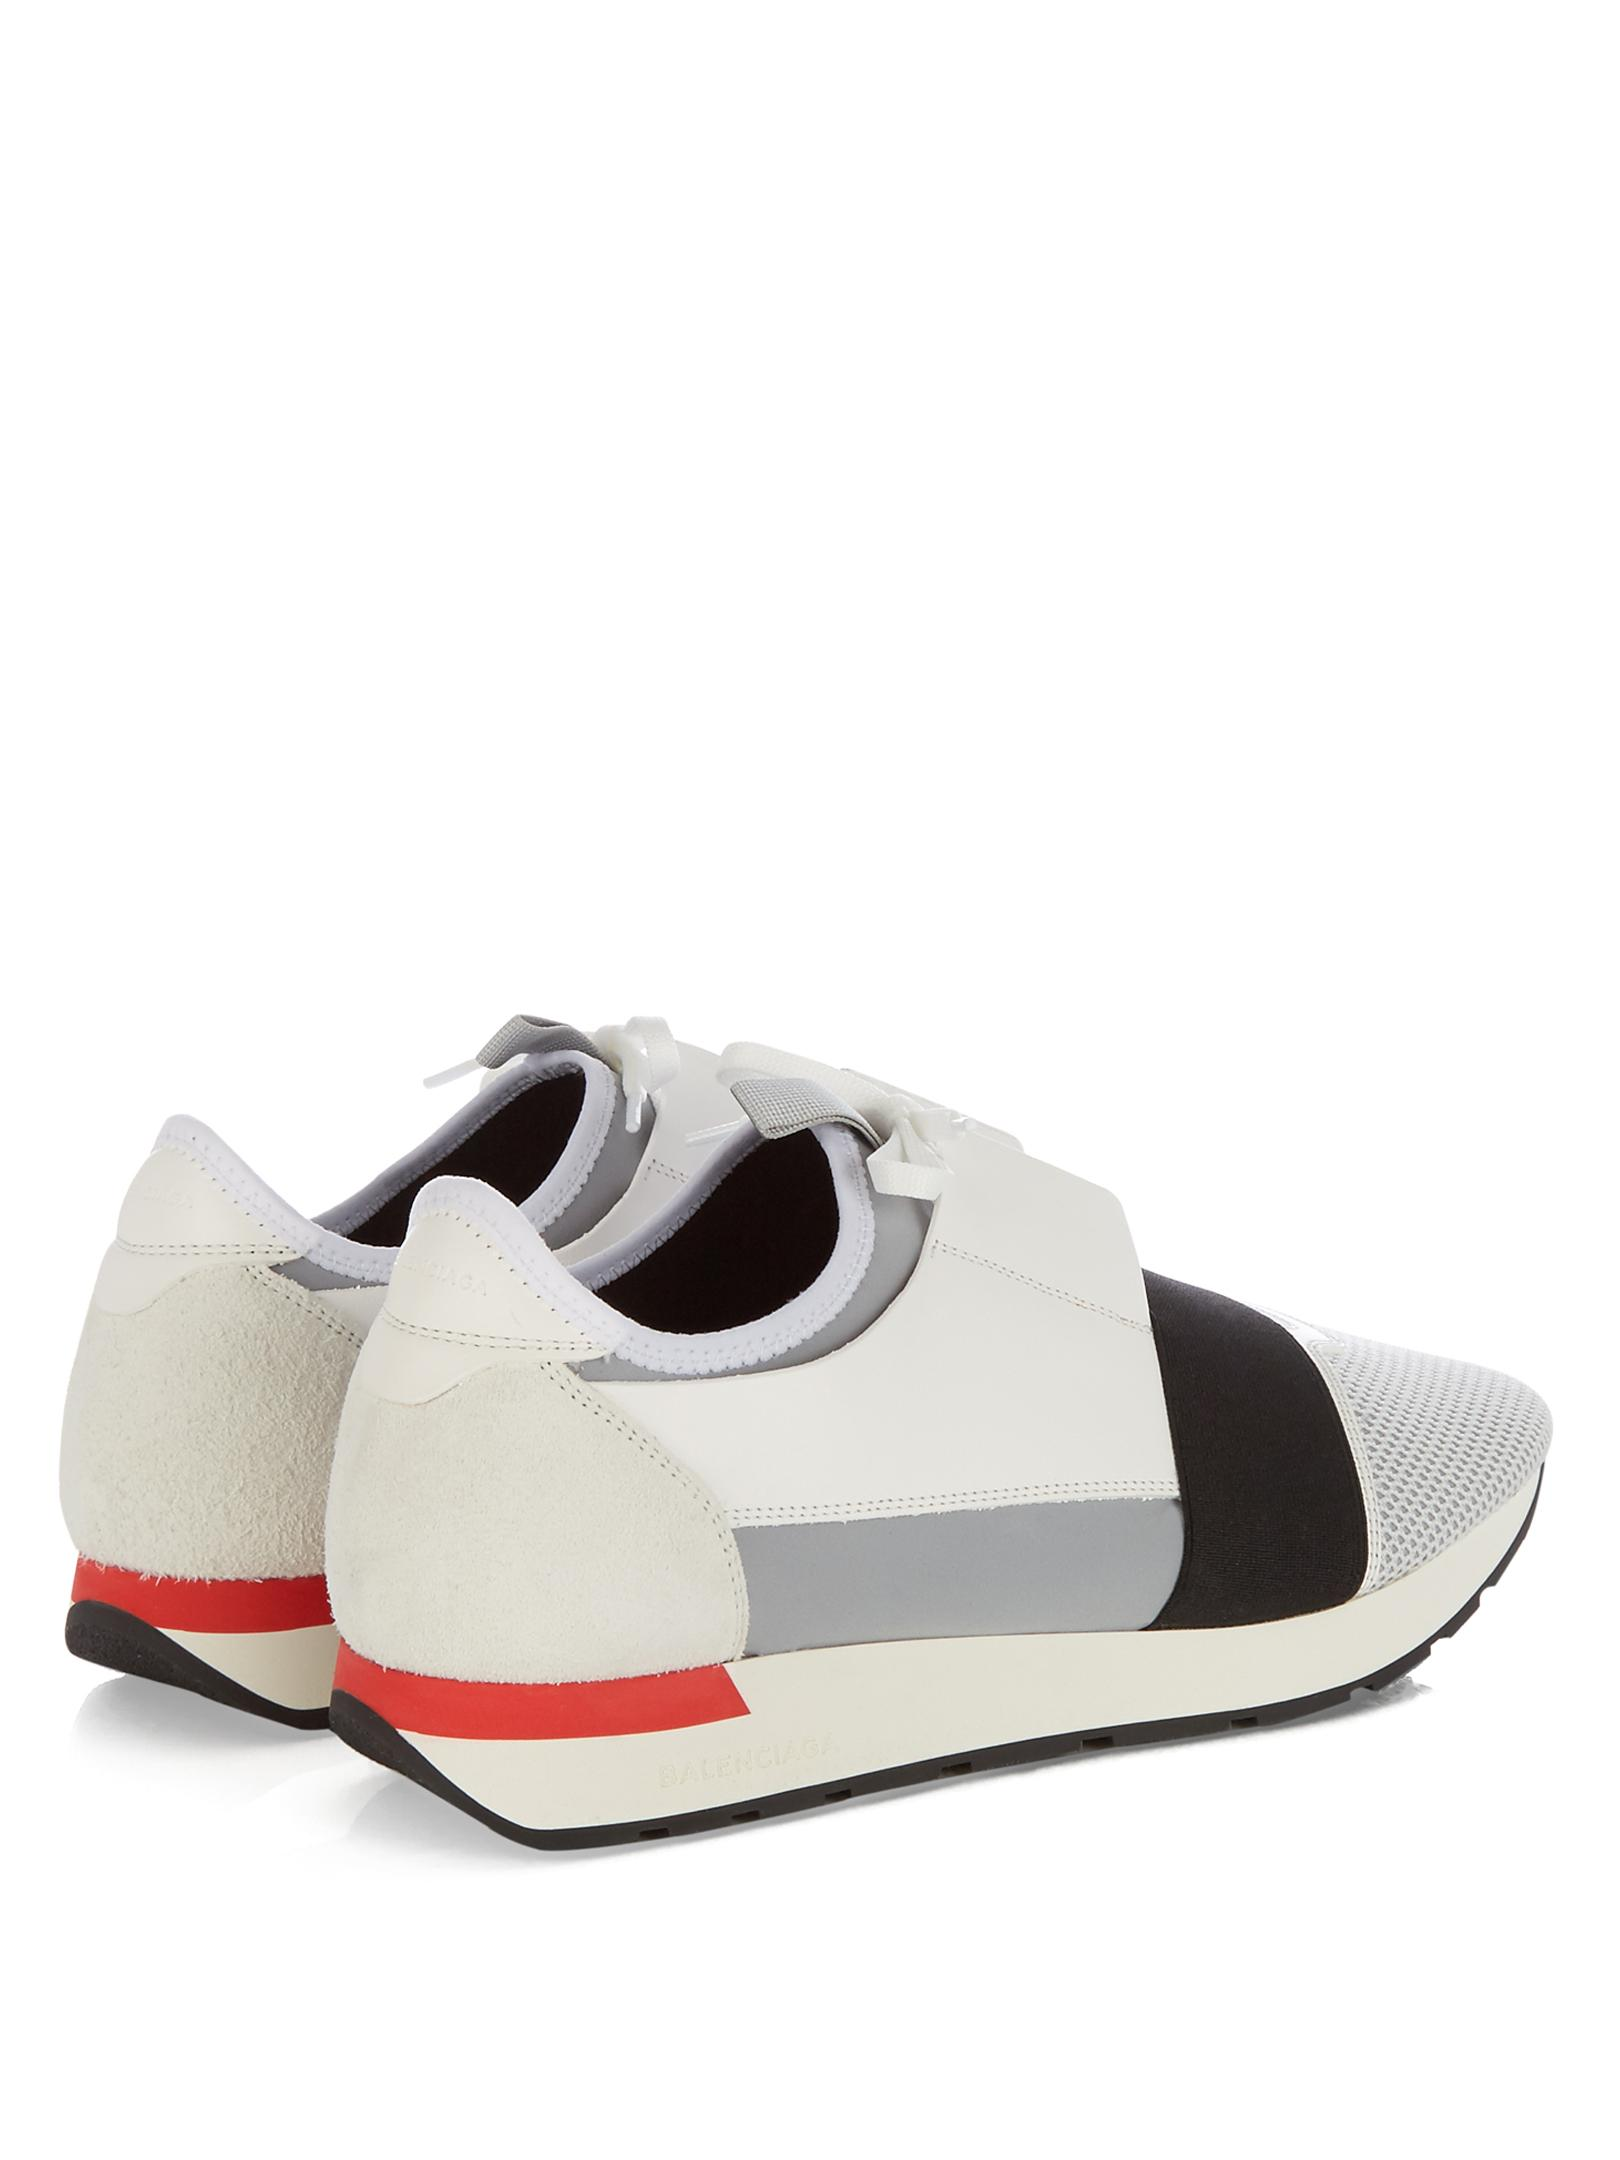 Balenciaga Race Runners Panelled Low-top Trainers in White ...   1620 x 2160 jpeg 123kB